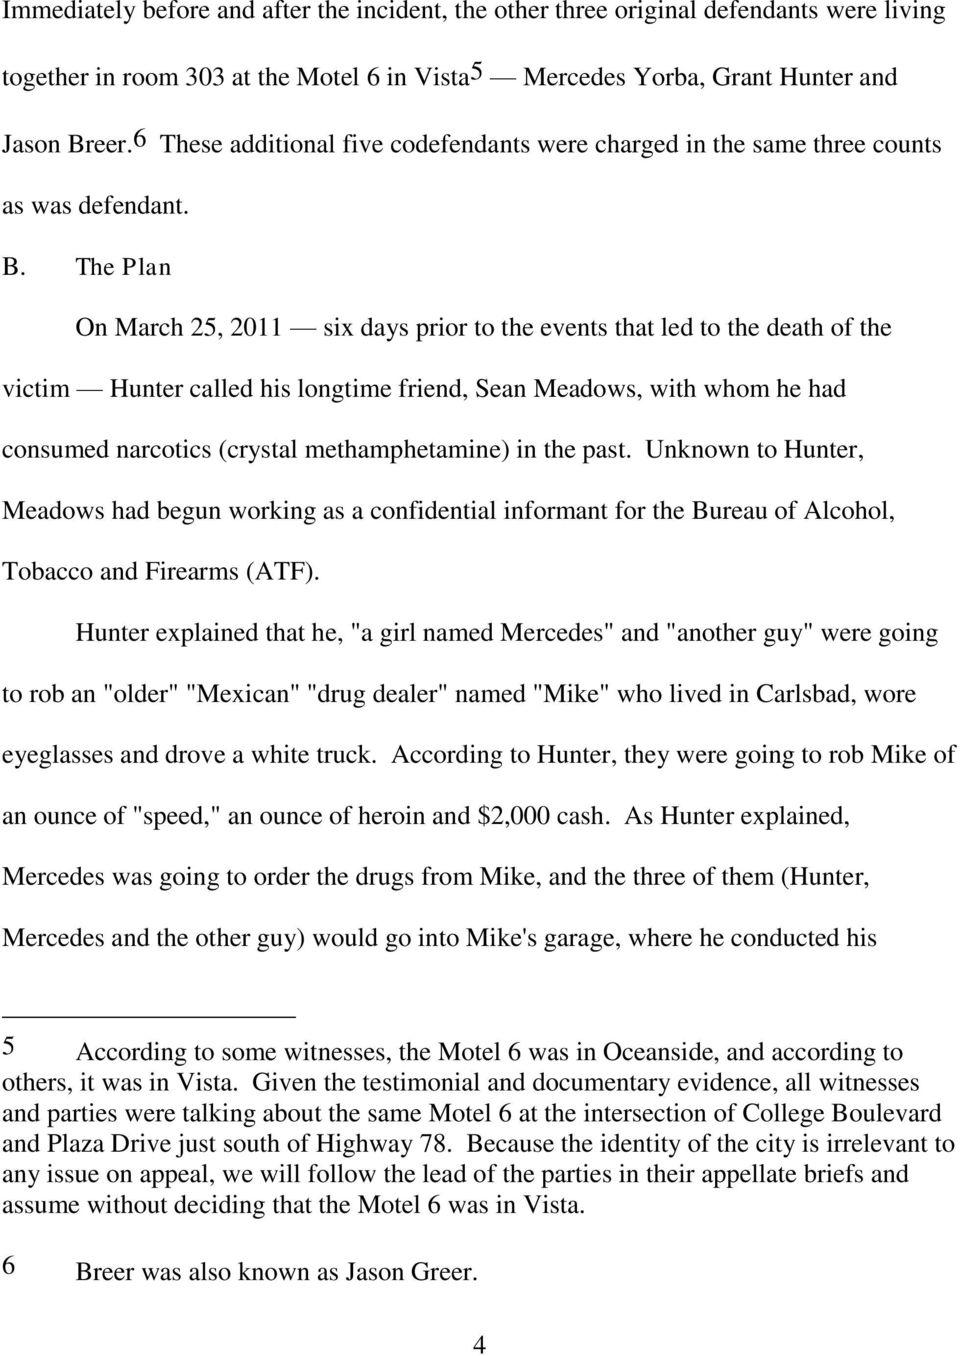 The Plan On March 25, 2011 six days prior to the events that led to the death of the victim Hunter called his longtime friend, Sean Meadows, with whom he had consumed narcotics (crystal